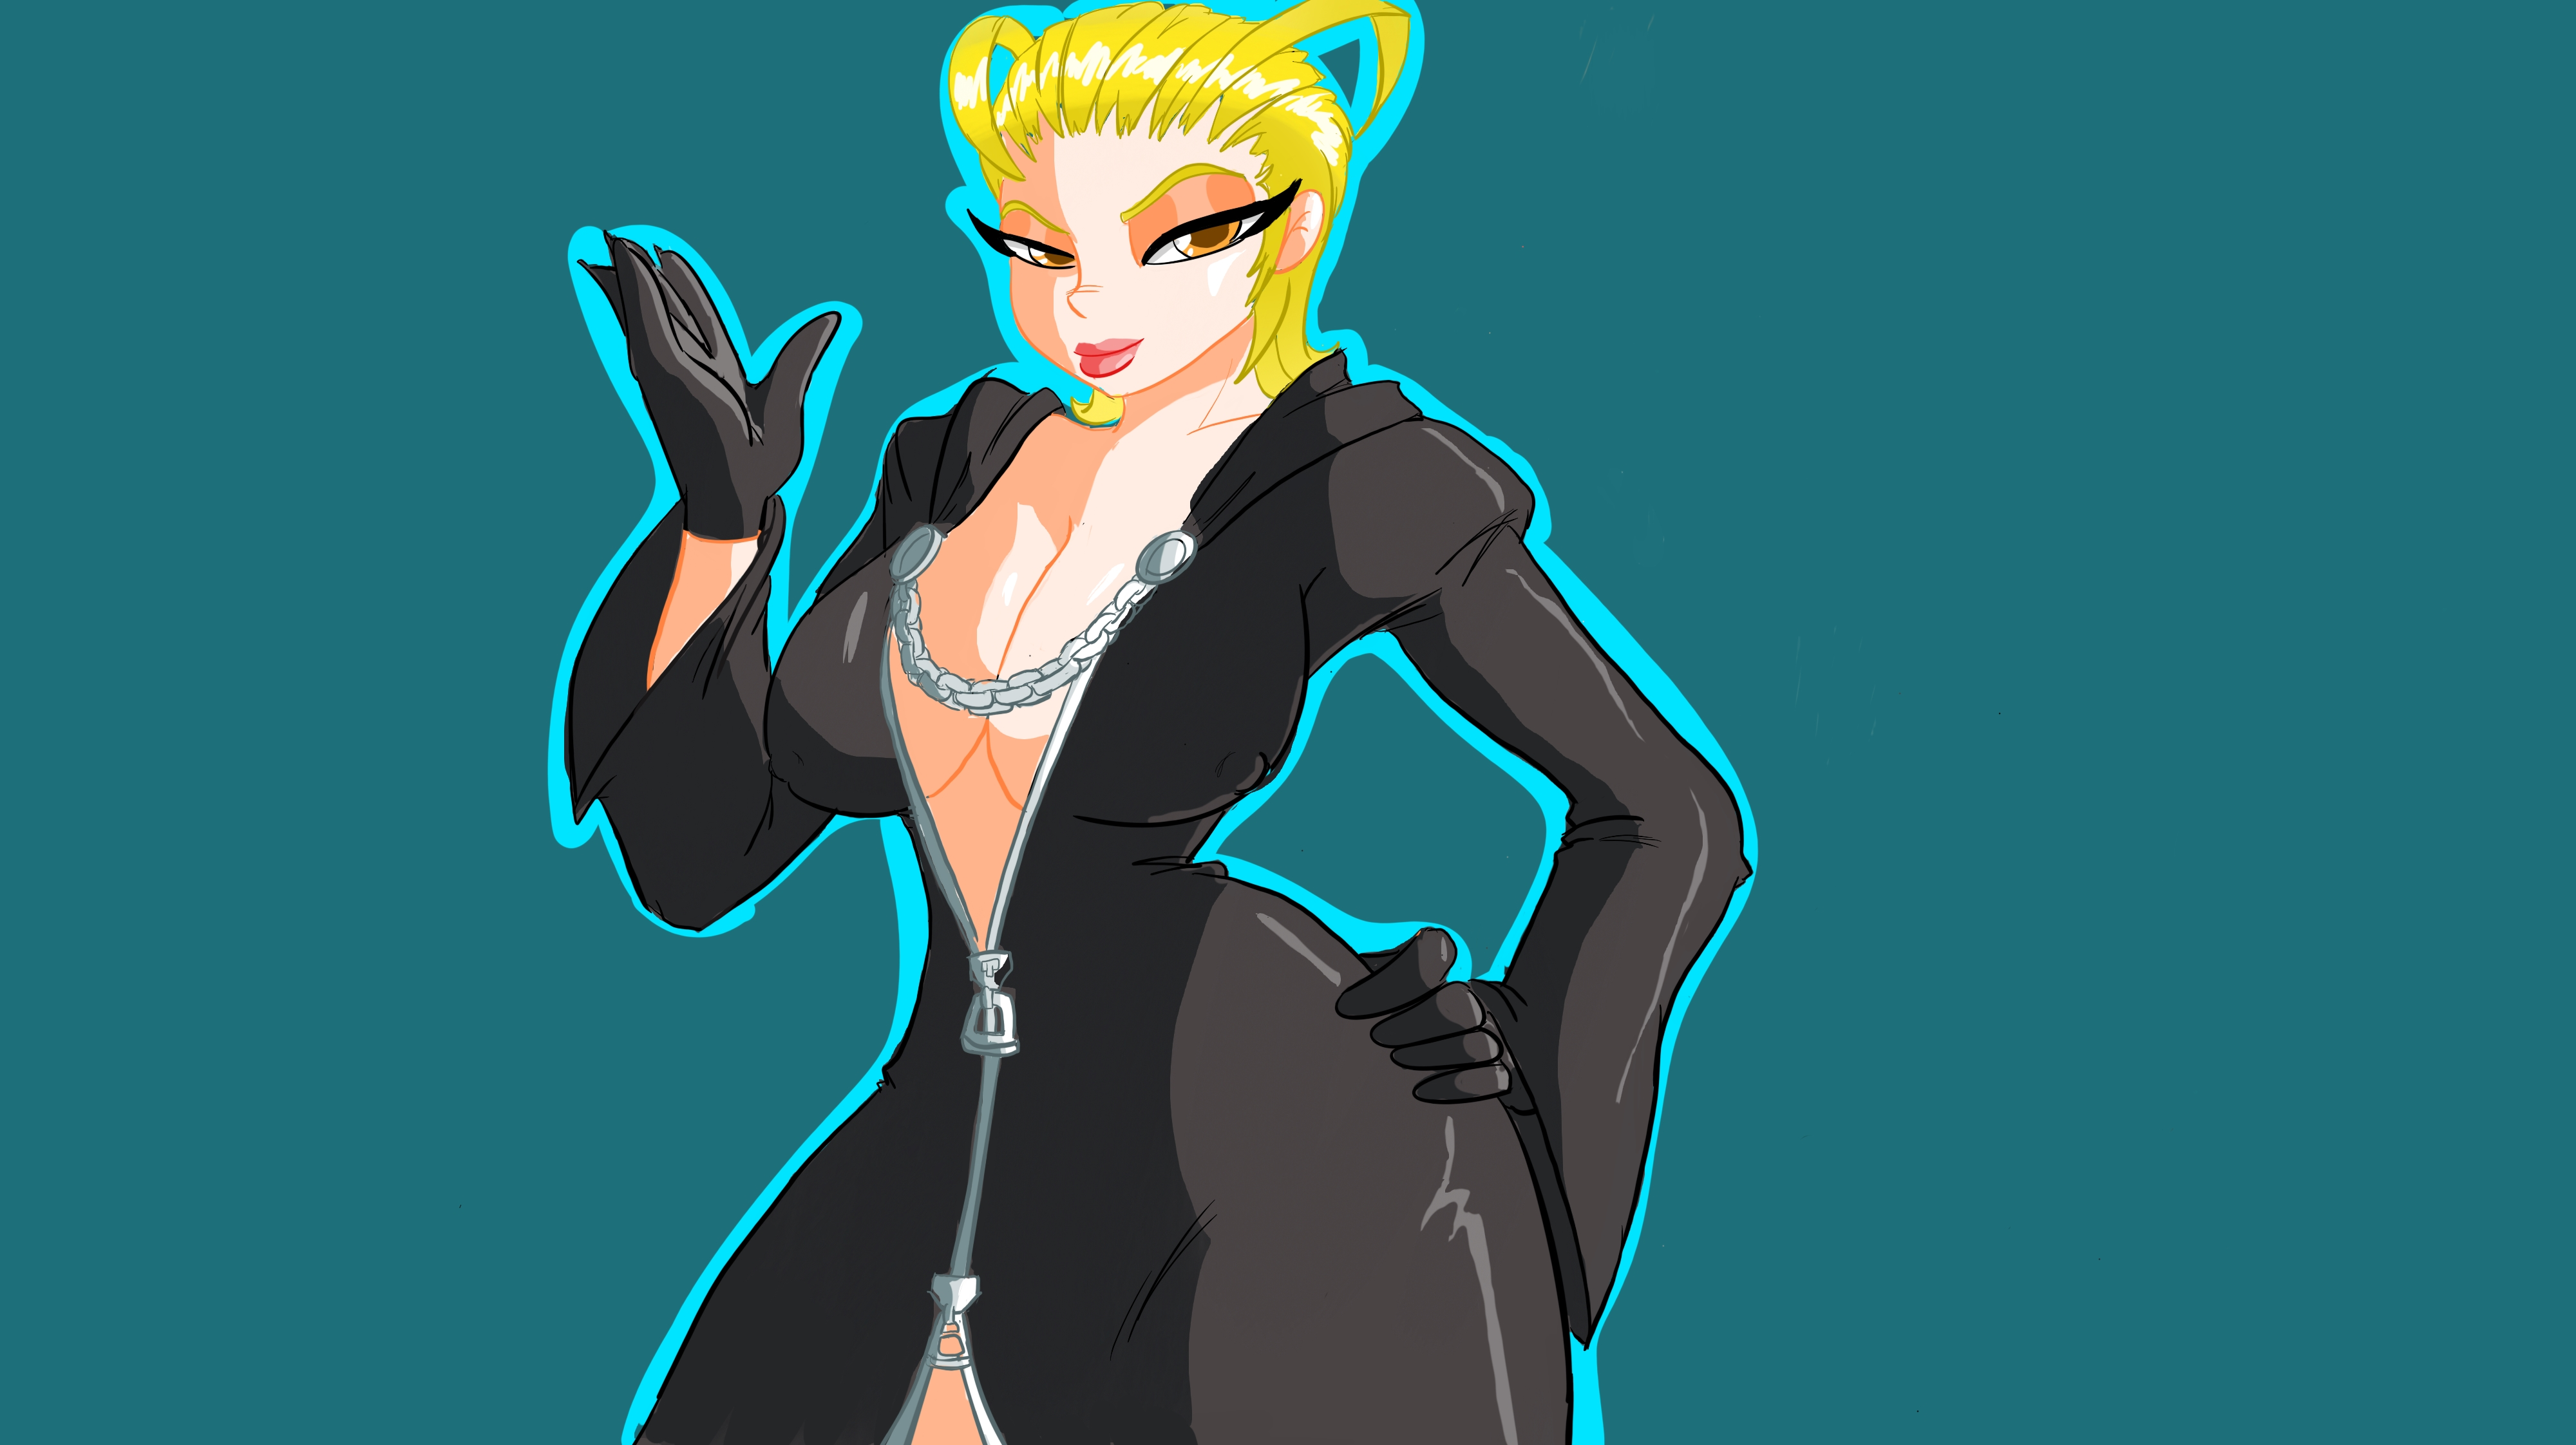 Thicc Larxene By Moistfajitadip On Newgrounds This is my first time making a oneshot, and years since i made. thicc larxene by moistfajitadip on